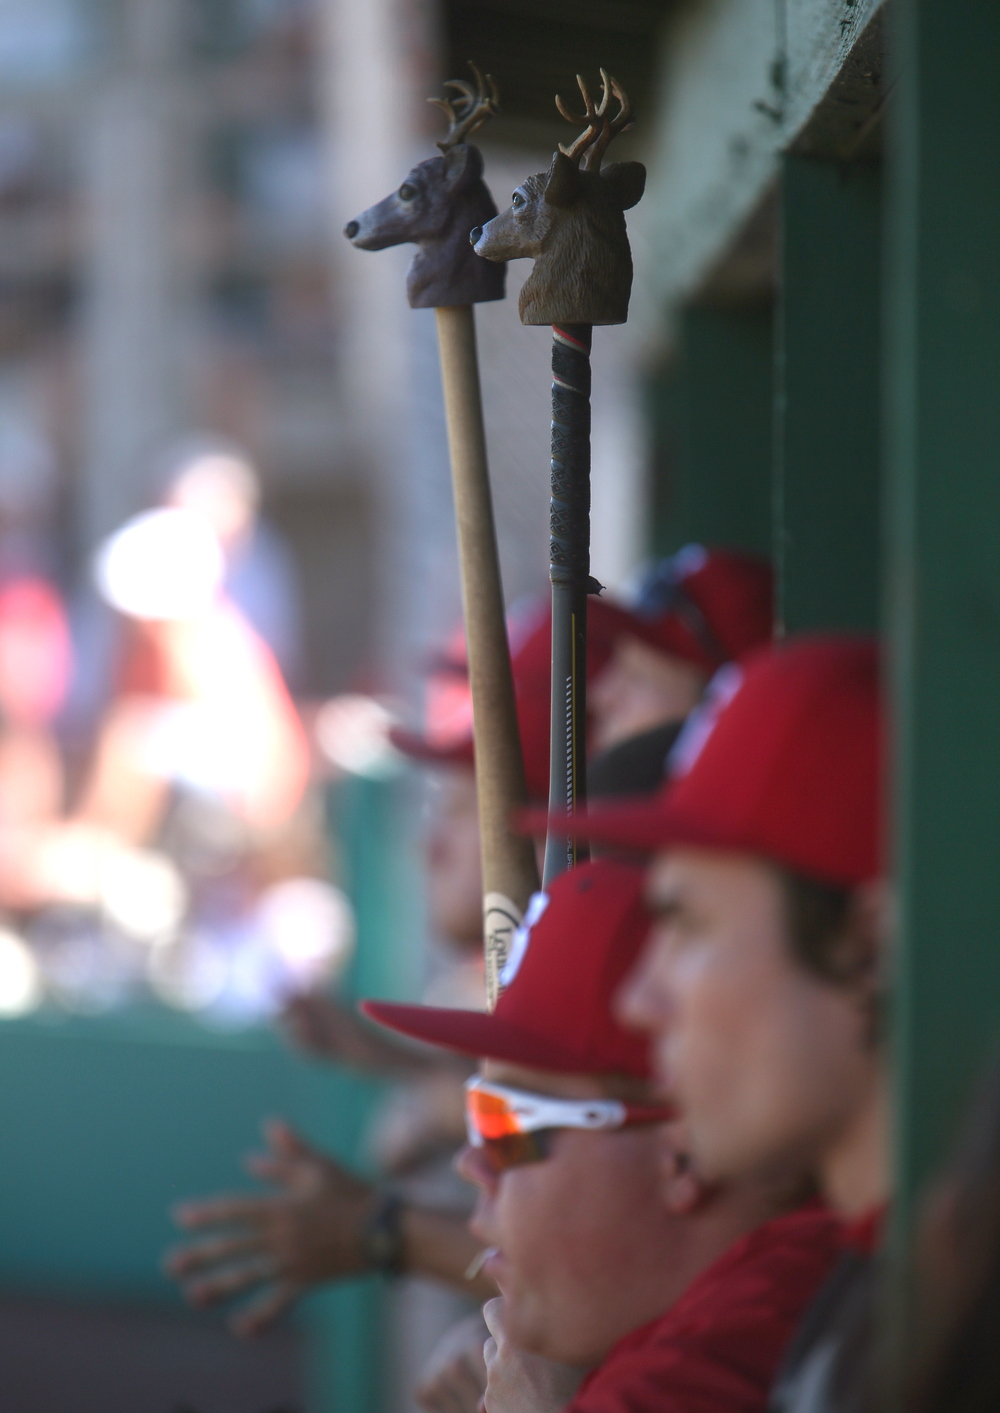 Not taking superstition too far, but certainly a little bit, the Senators held aloft miniature deer heads stuck on baseball bats from the dugout during the game, and wouldn't you know? It seemed to work Thursday night with a Senators win. David Spencer/The State Journal-Register